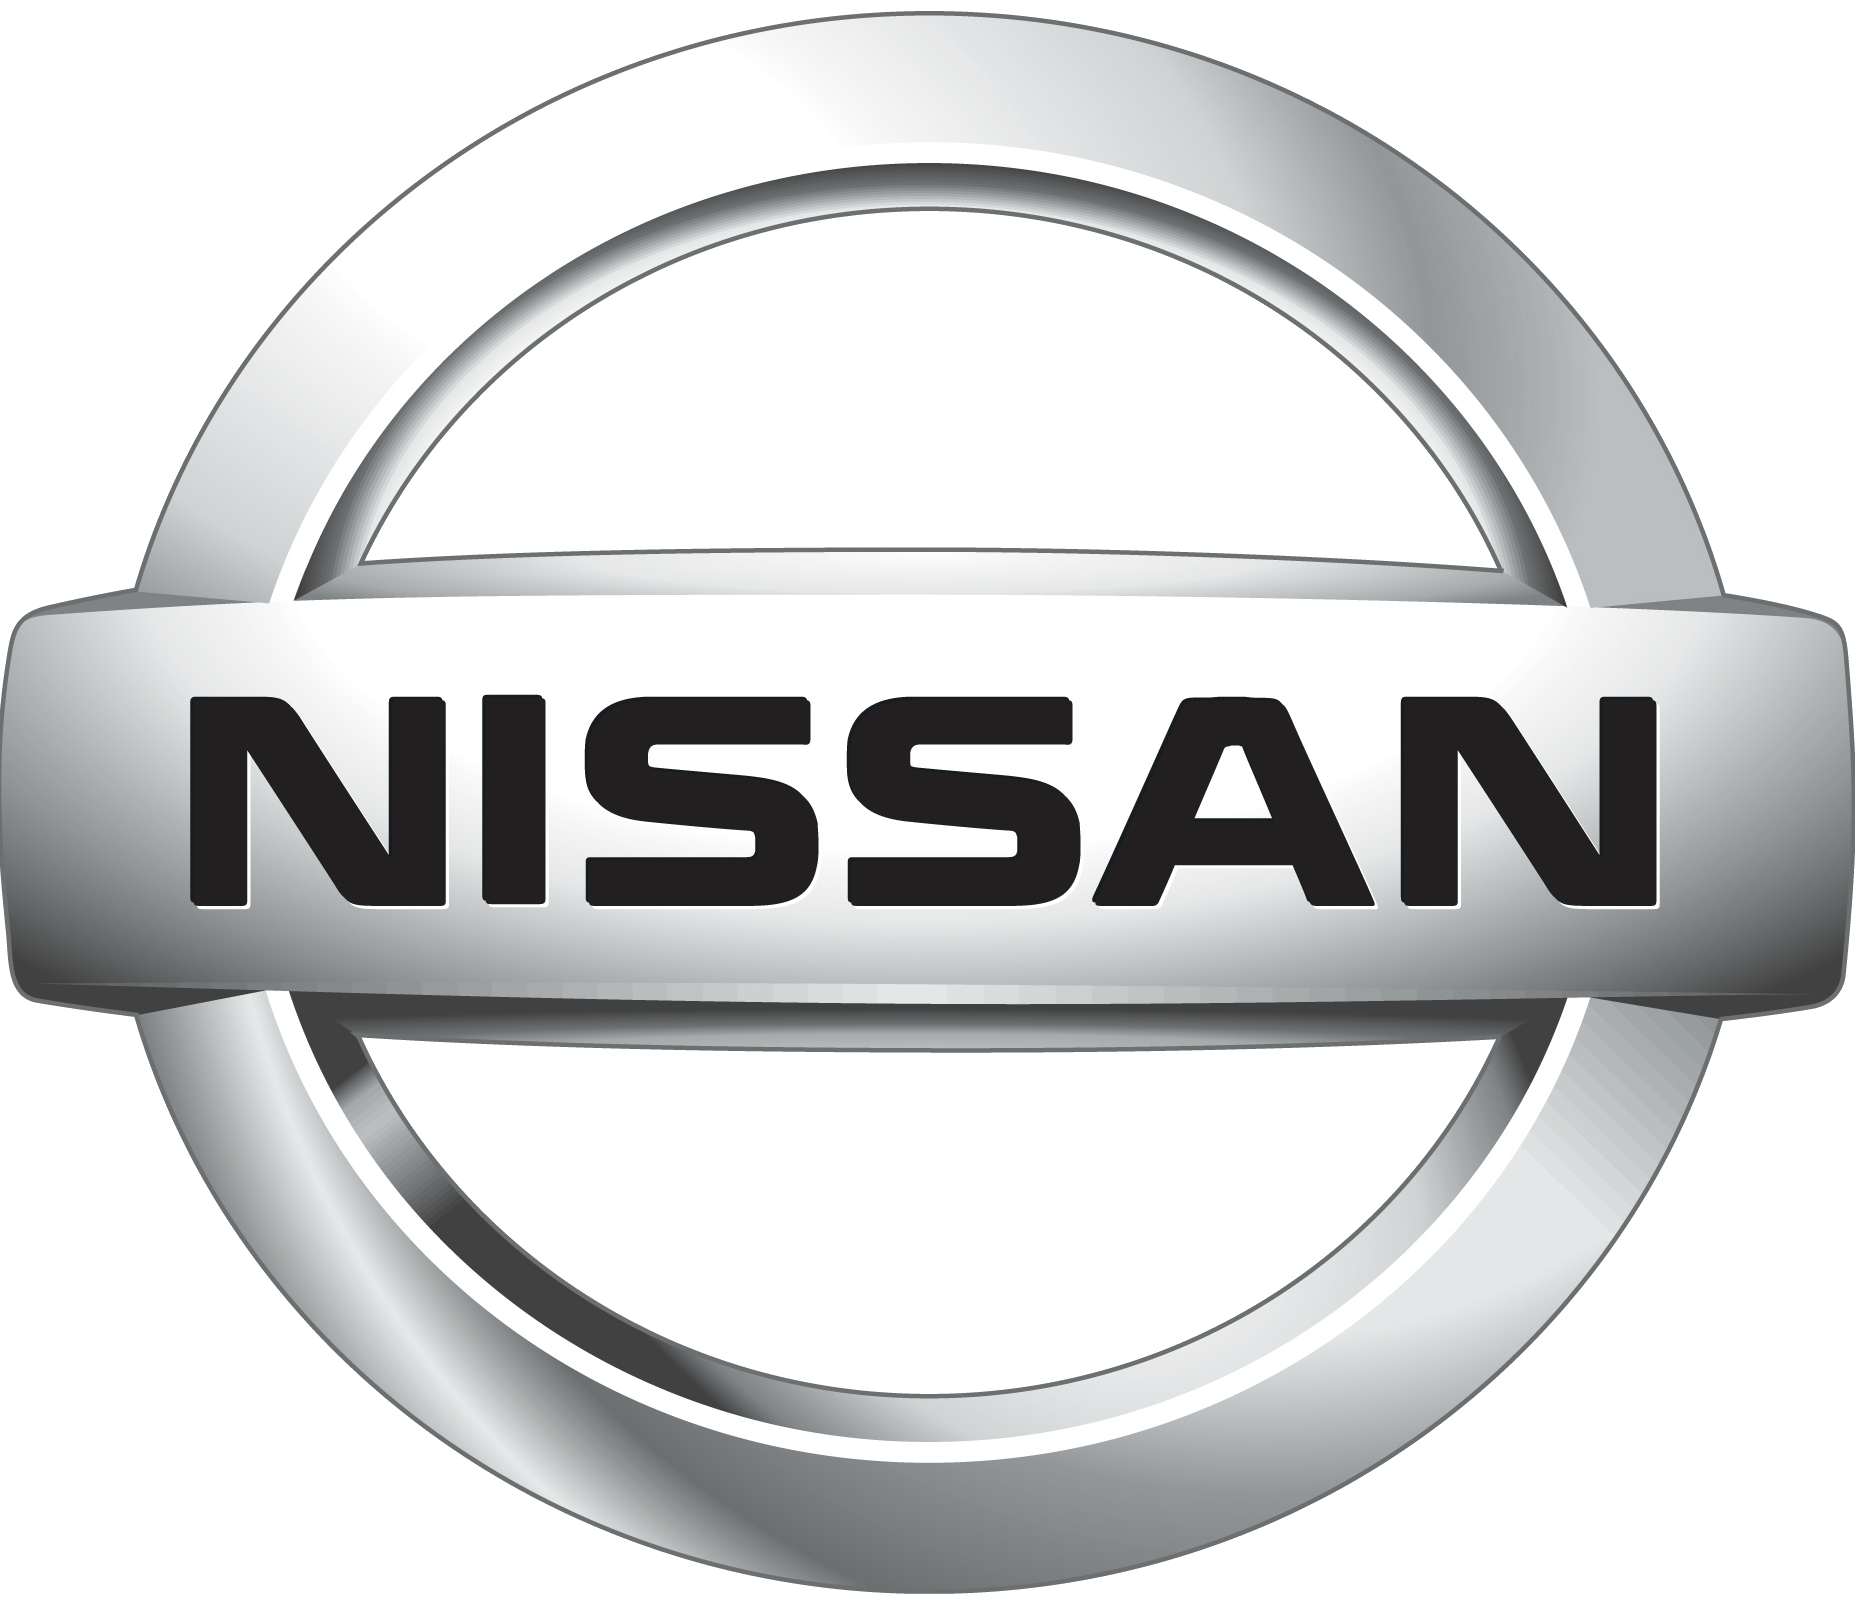 Nissan Logo Nissan Car Symbol Meaning And History Car Brands Car Logos Meaning And Symbol